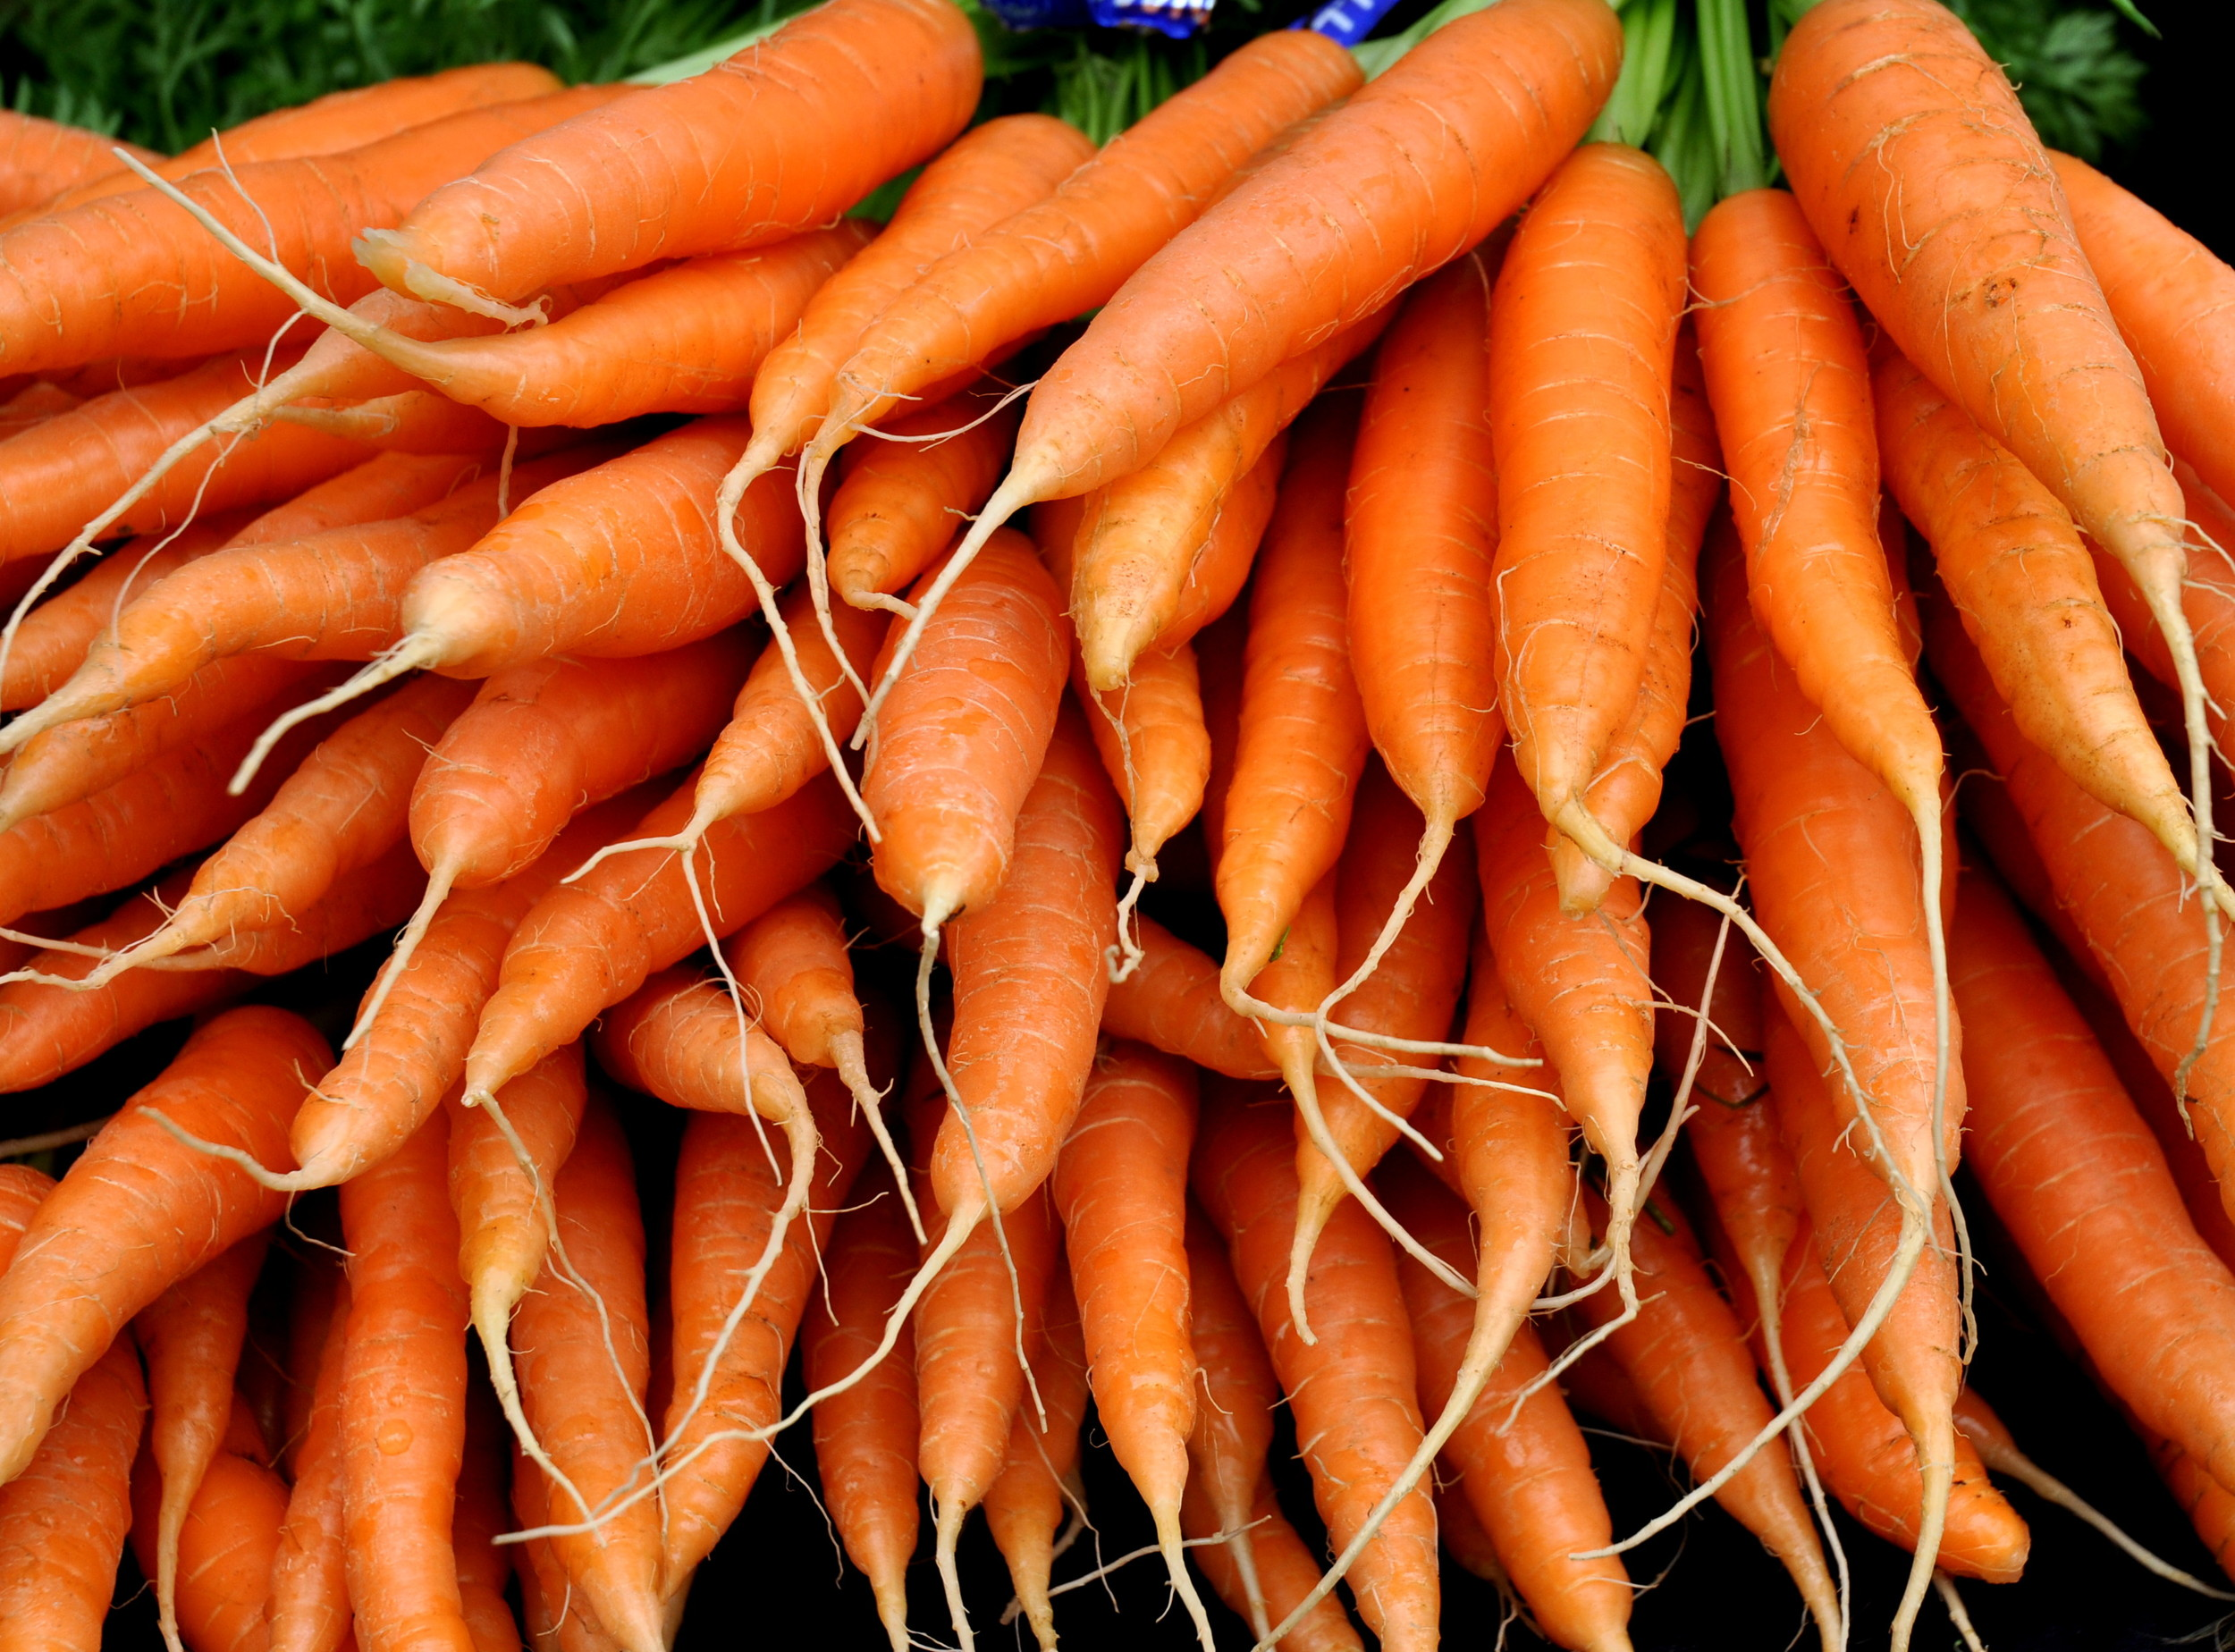 Organic carrots from Kirsop Farm. Photo copyright 2013 by Zachary D. Lyons.